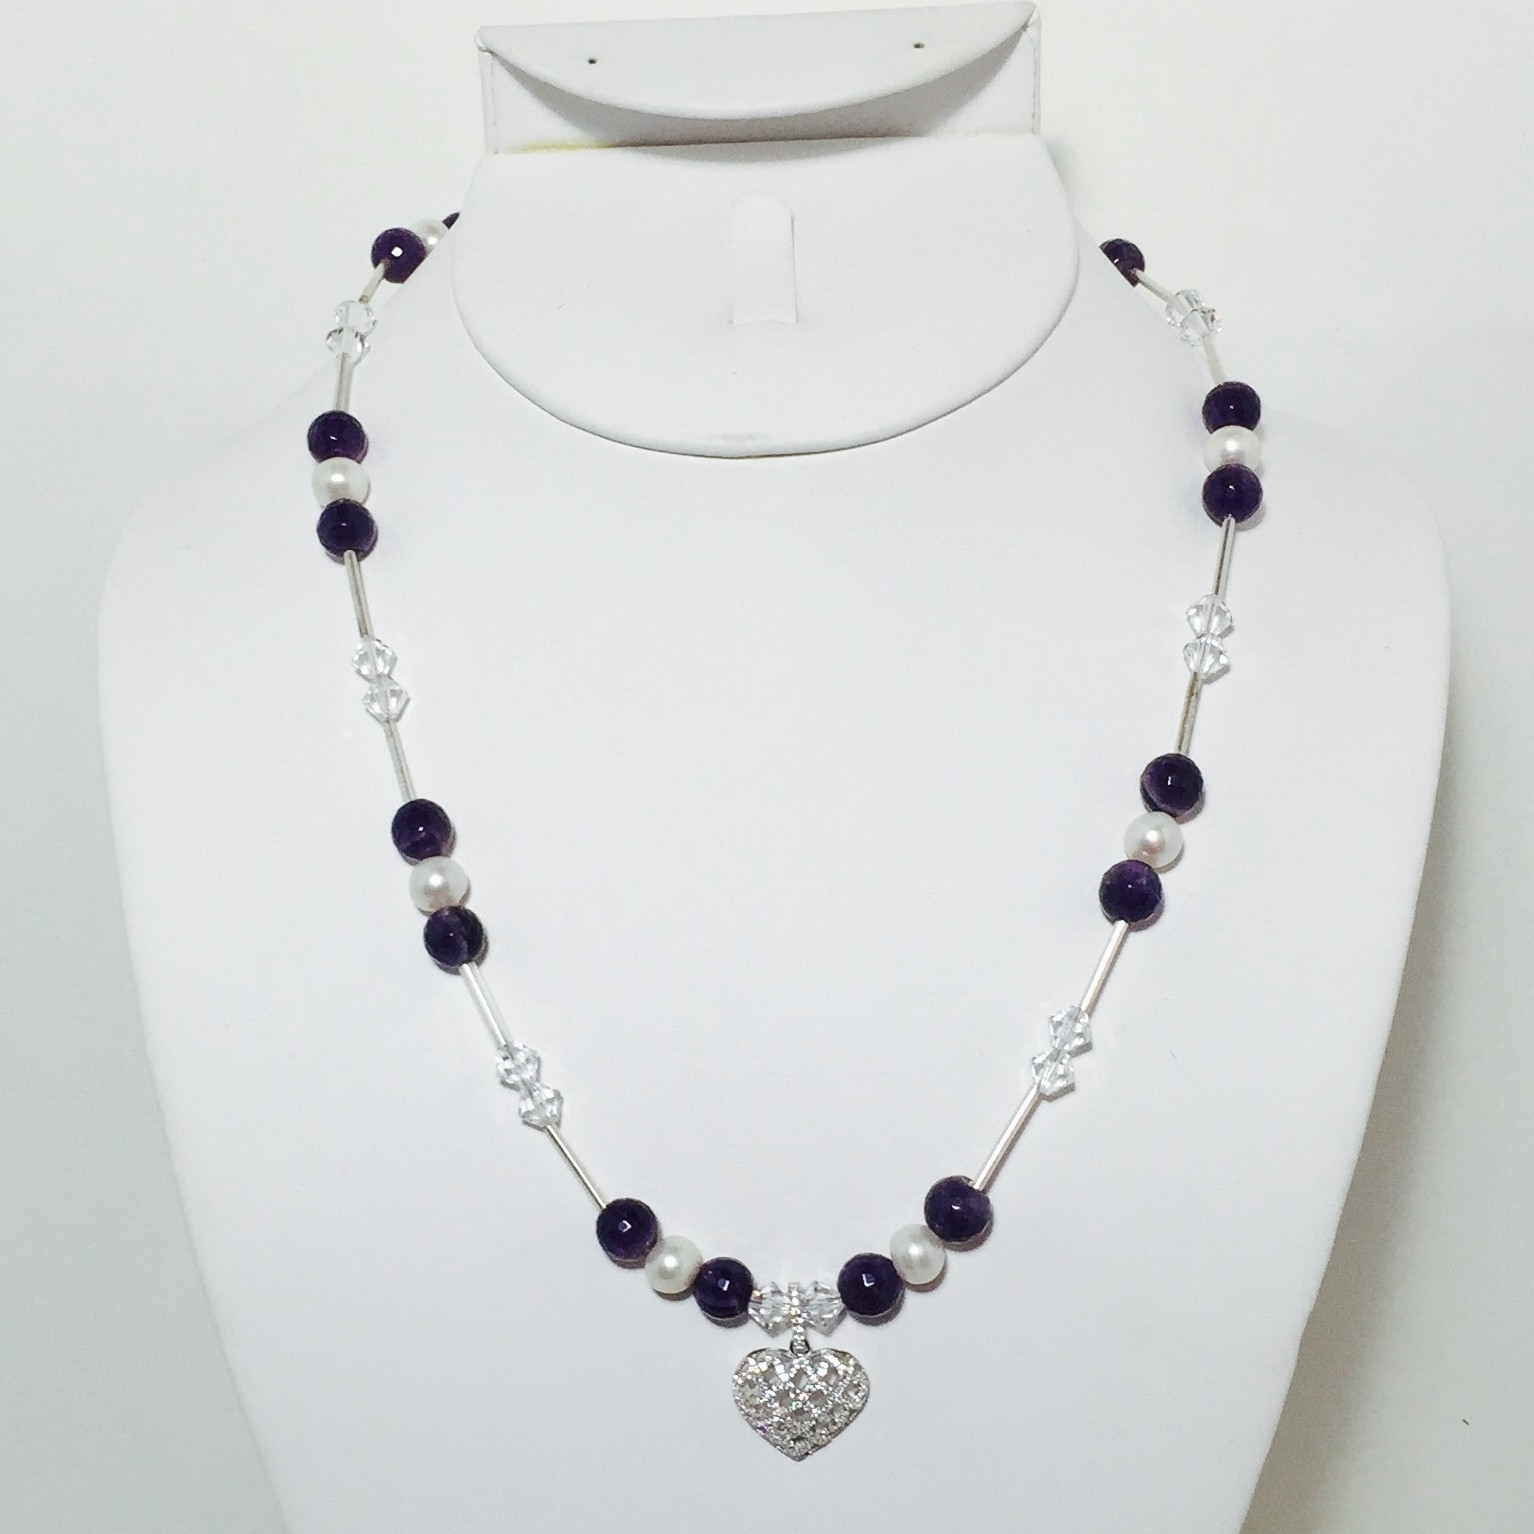 Amethyst, Pearl, Crystals and Sterling Silver Necklace